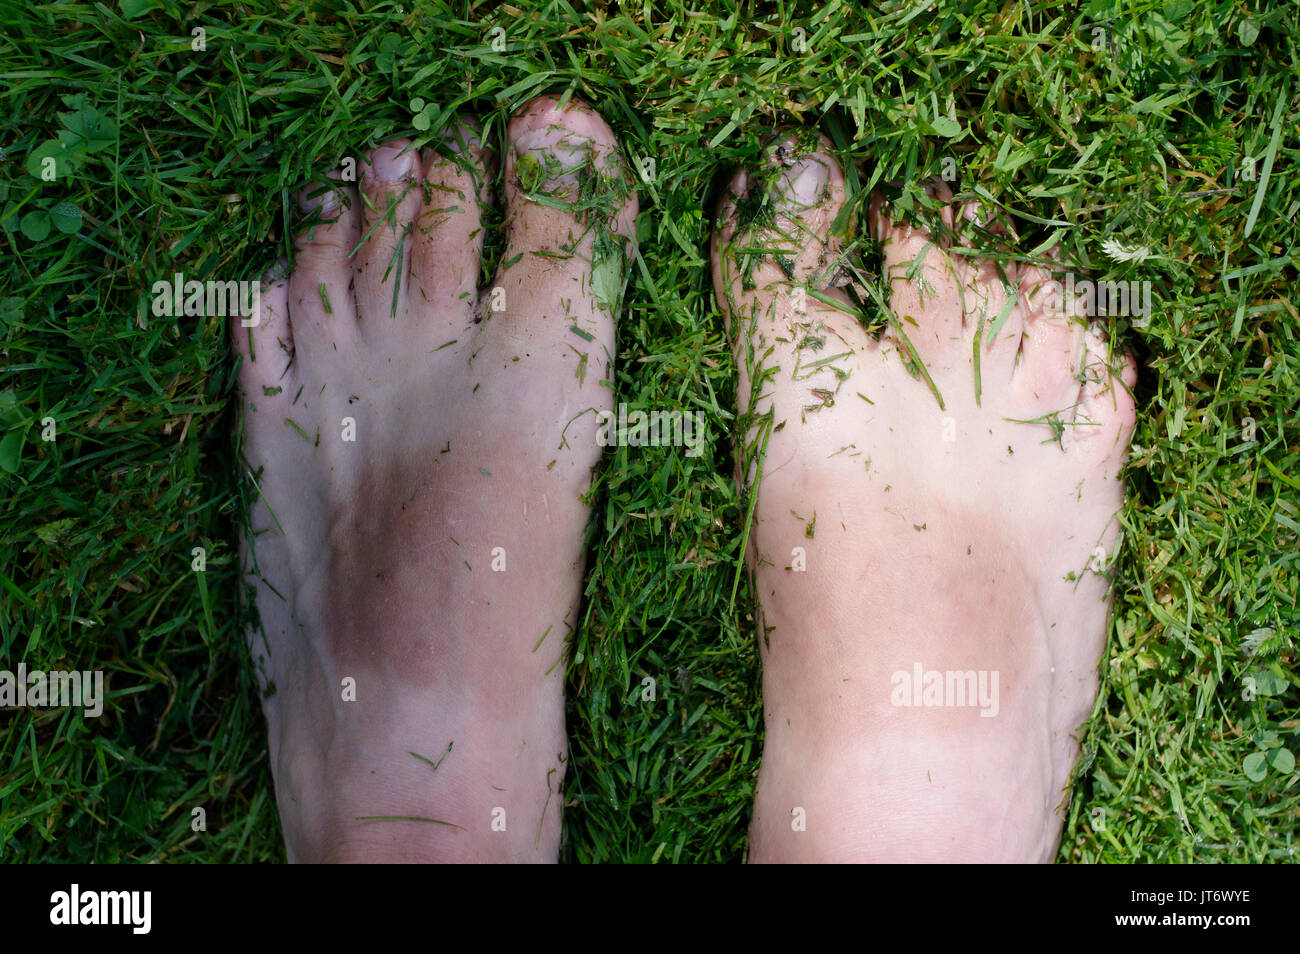 Bare toes in a wet grass - Stock Image